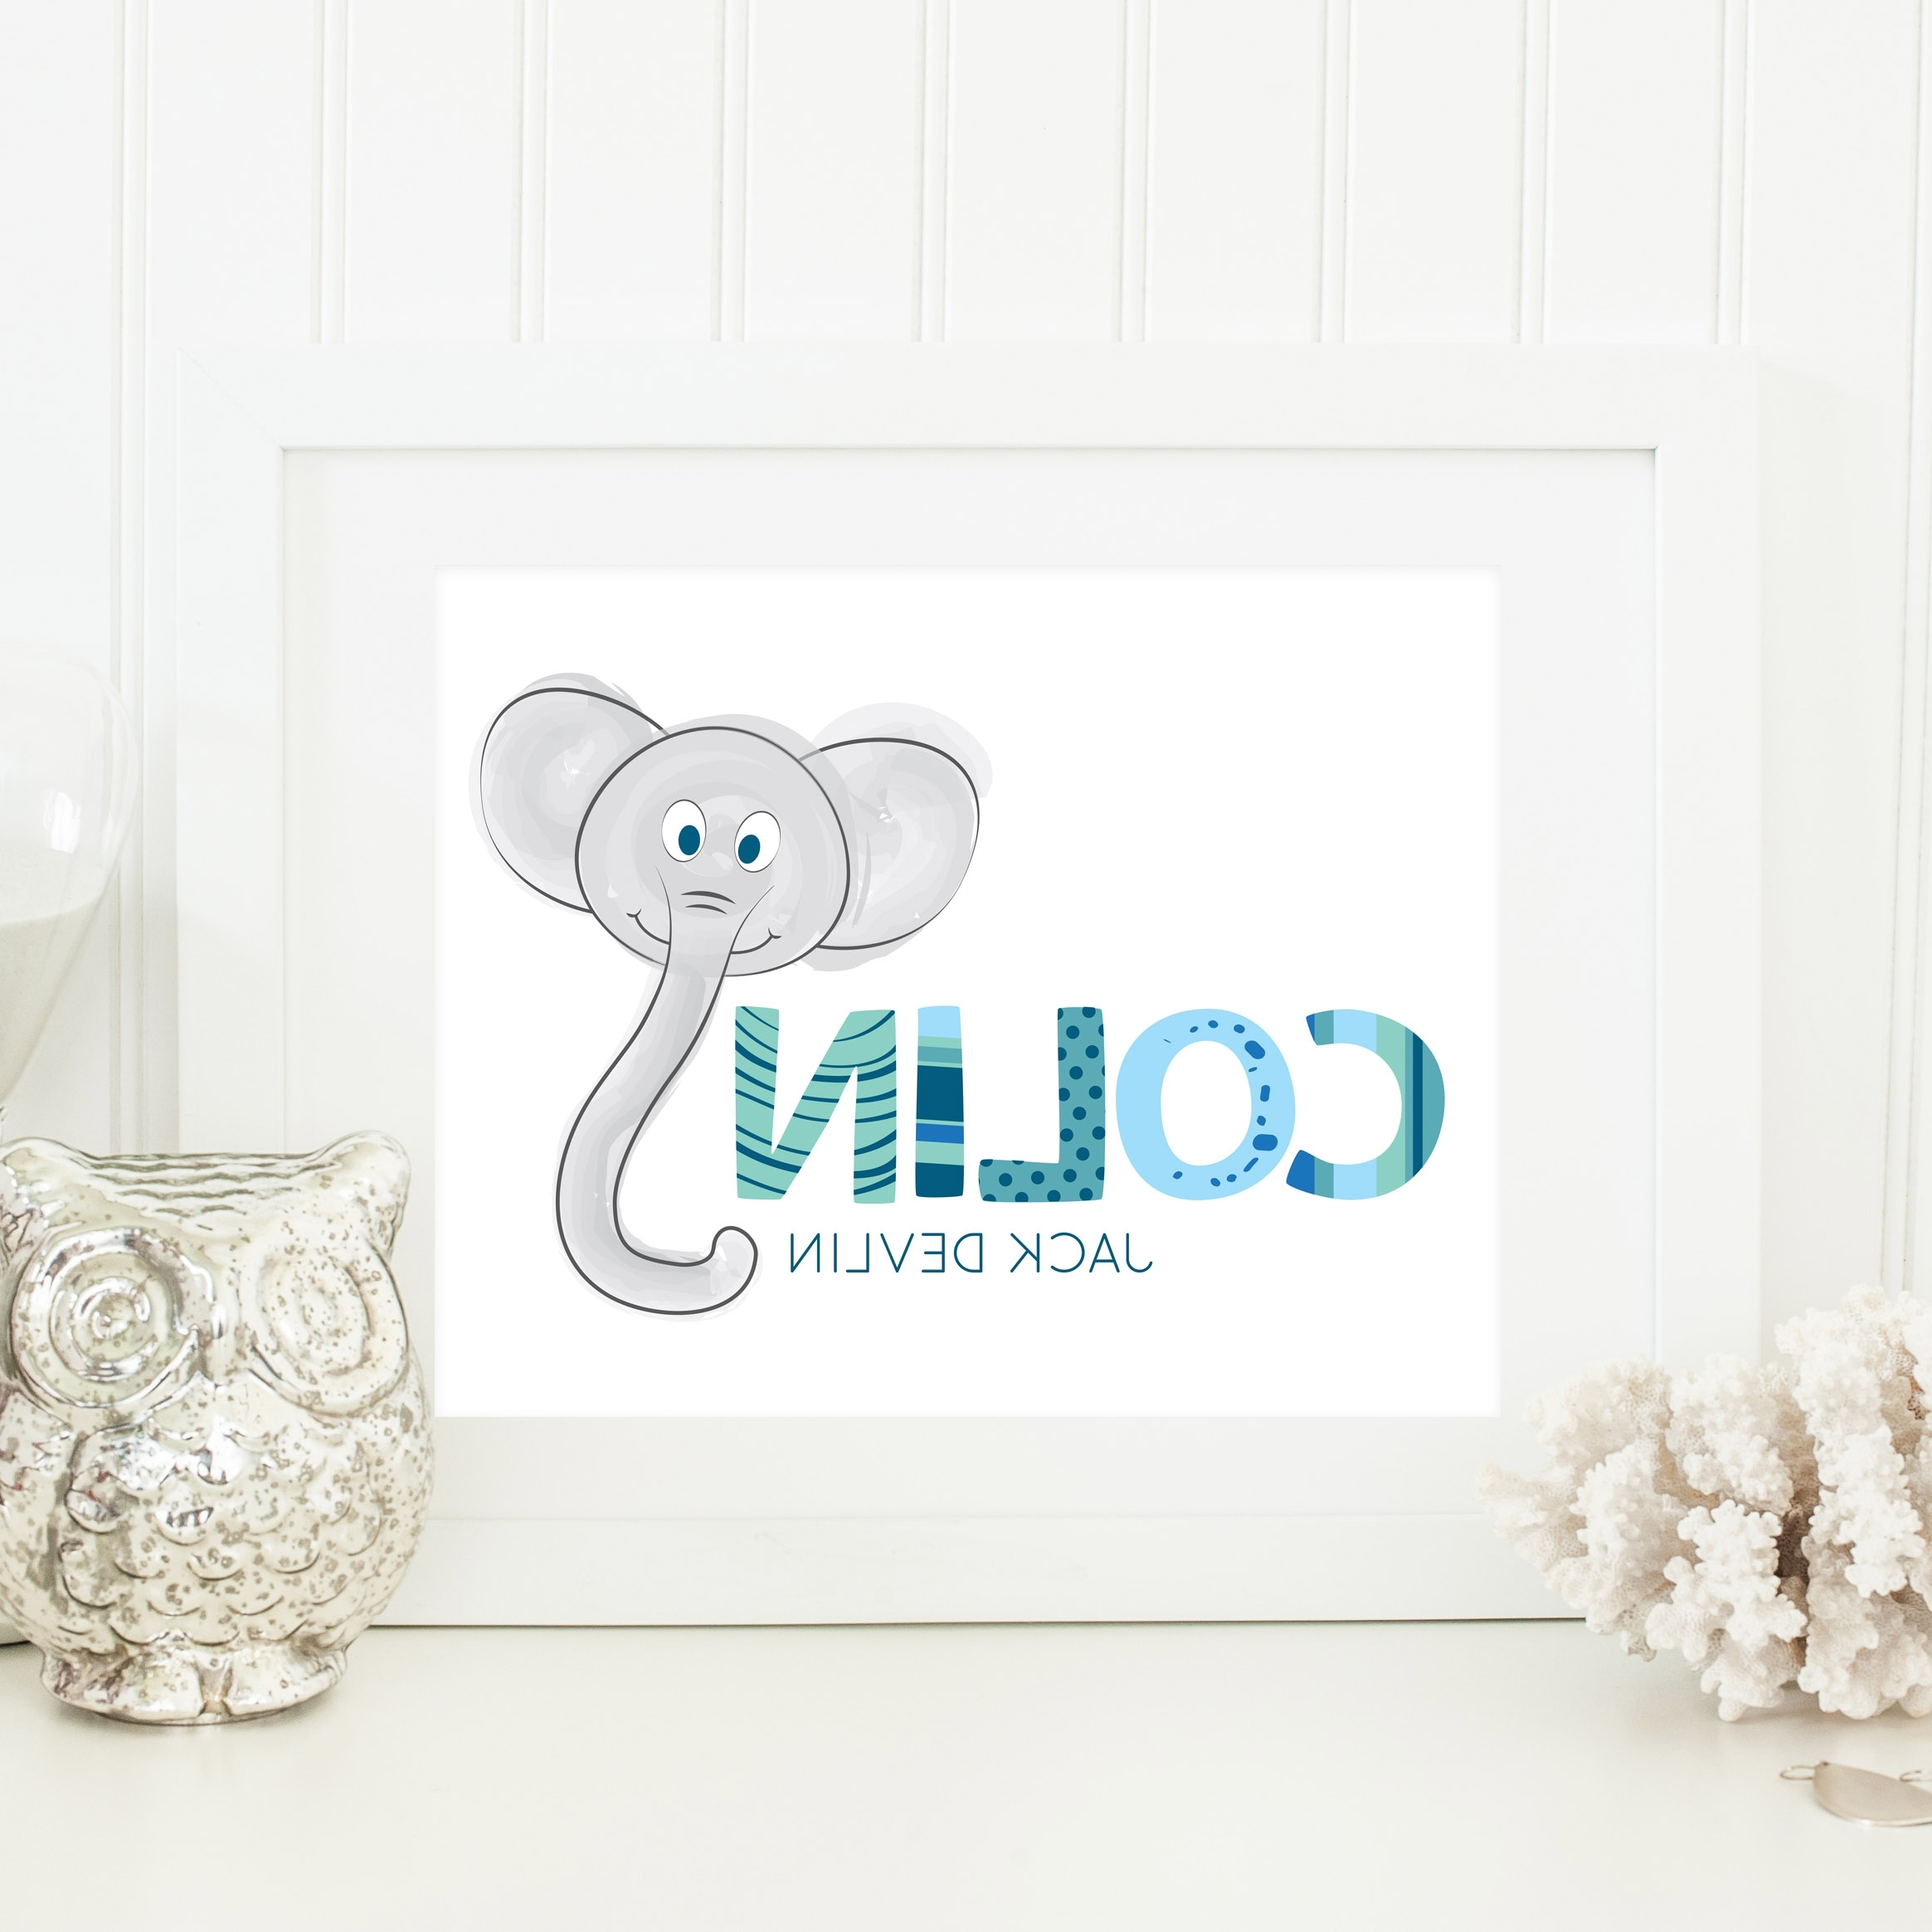 Widely Used Baby Name Wall Art Inside Baby Name Art (View 15 of 15)